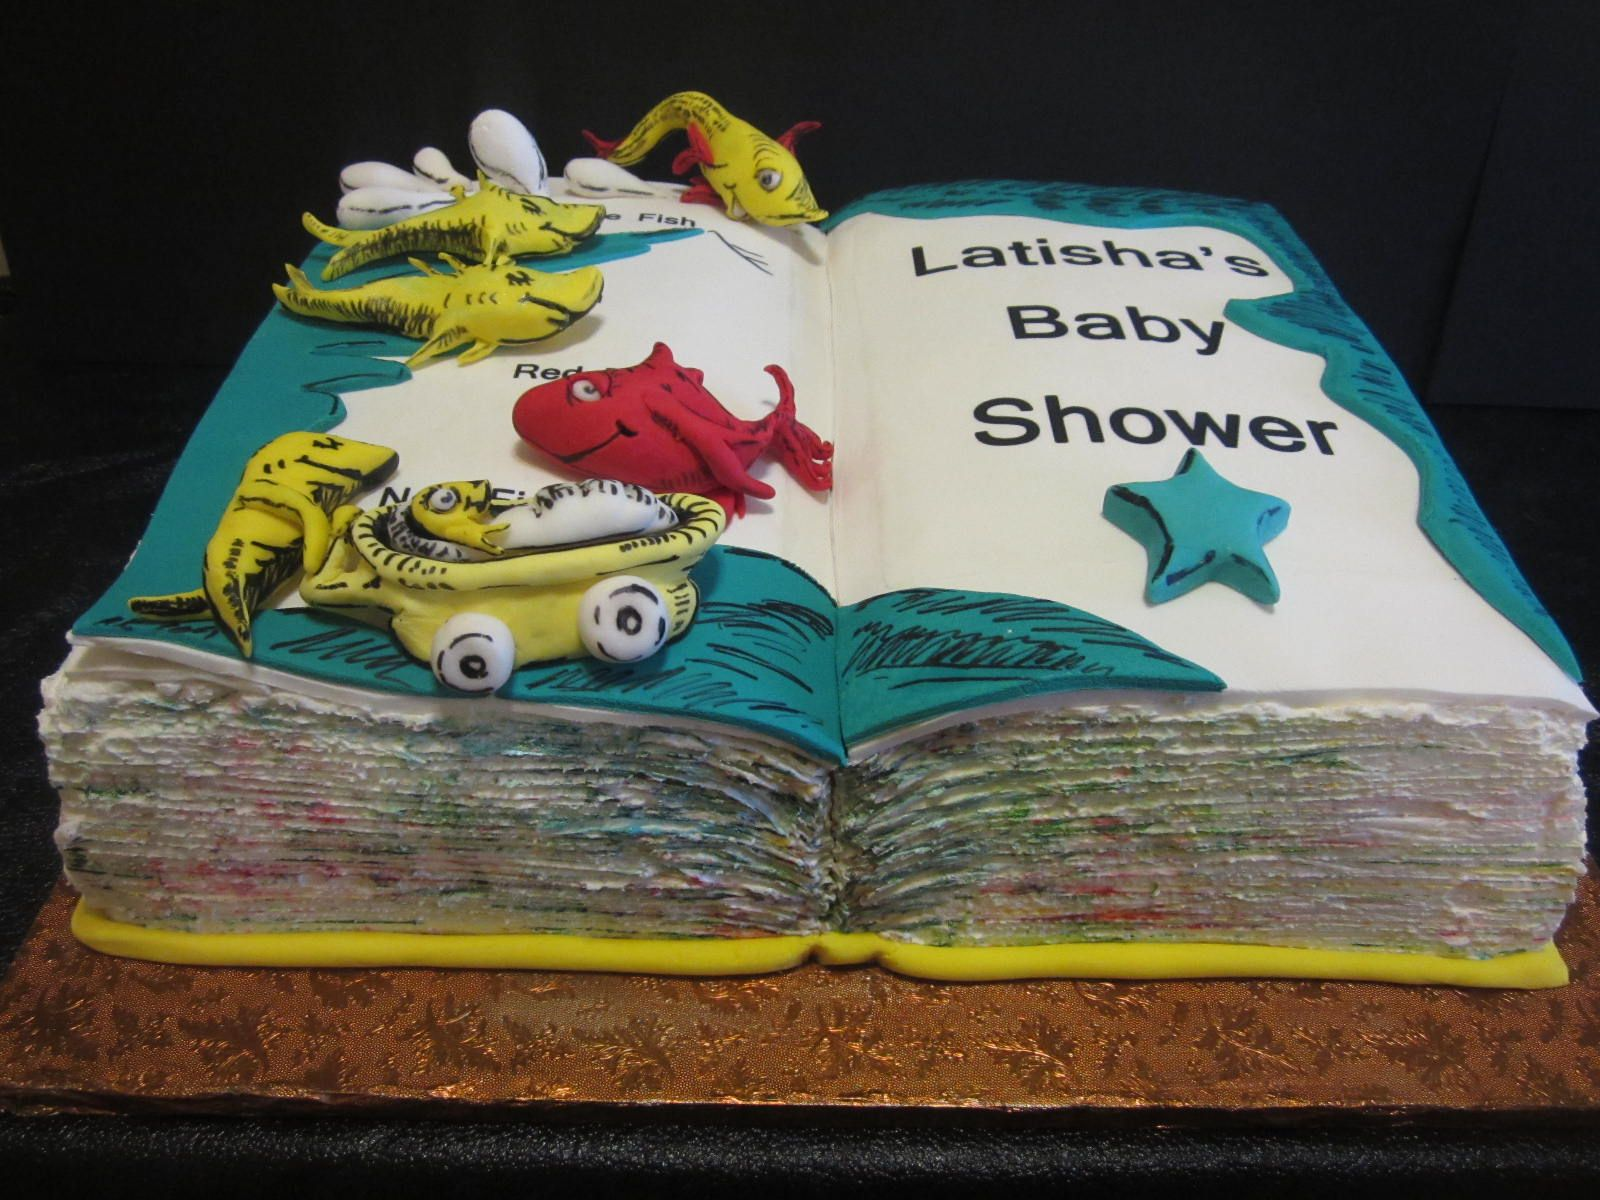 Dr. Suess baby shower ideas | Dr.Suess Inspired Baby Shower cake - Cake Decorating Community - Cakes ...